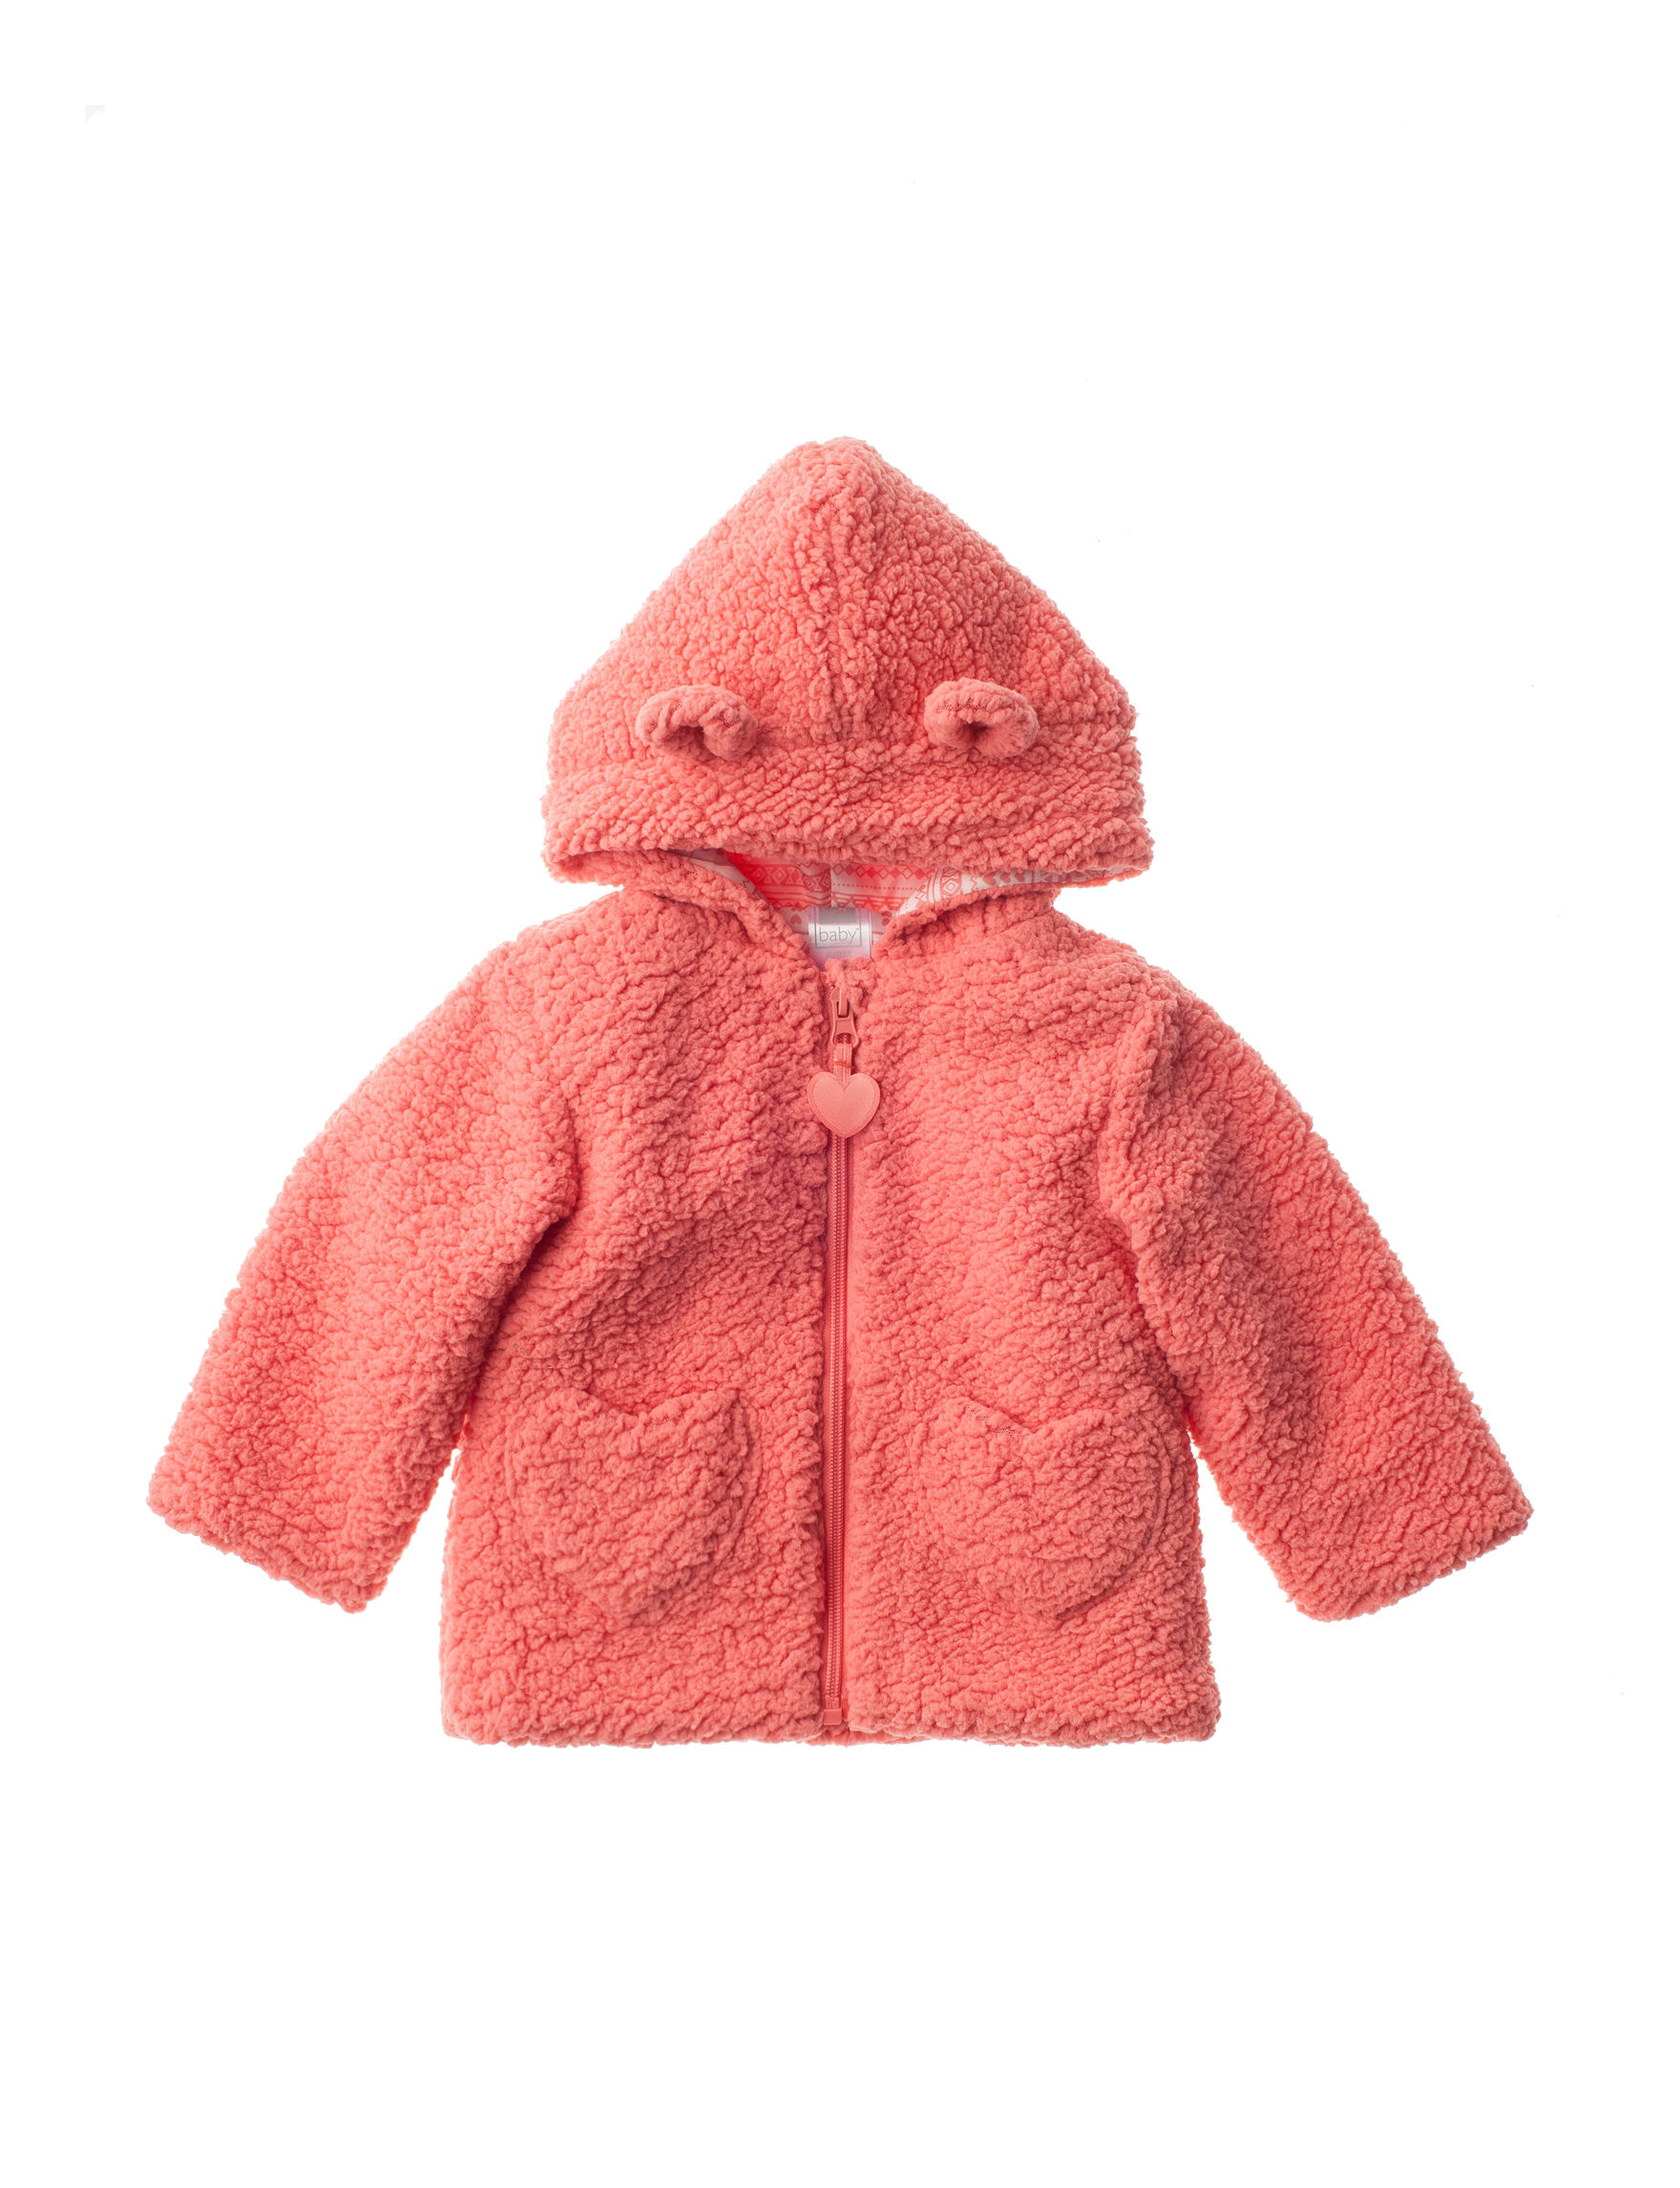 QT Baby Coral Lightweight Jackets & Blazers